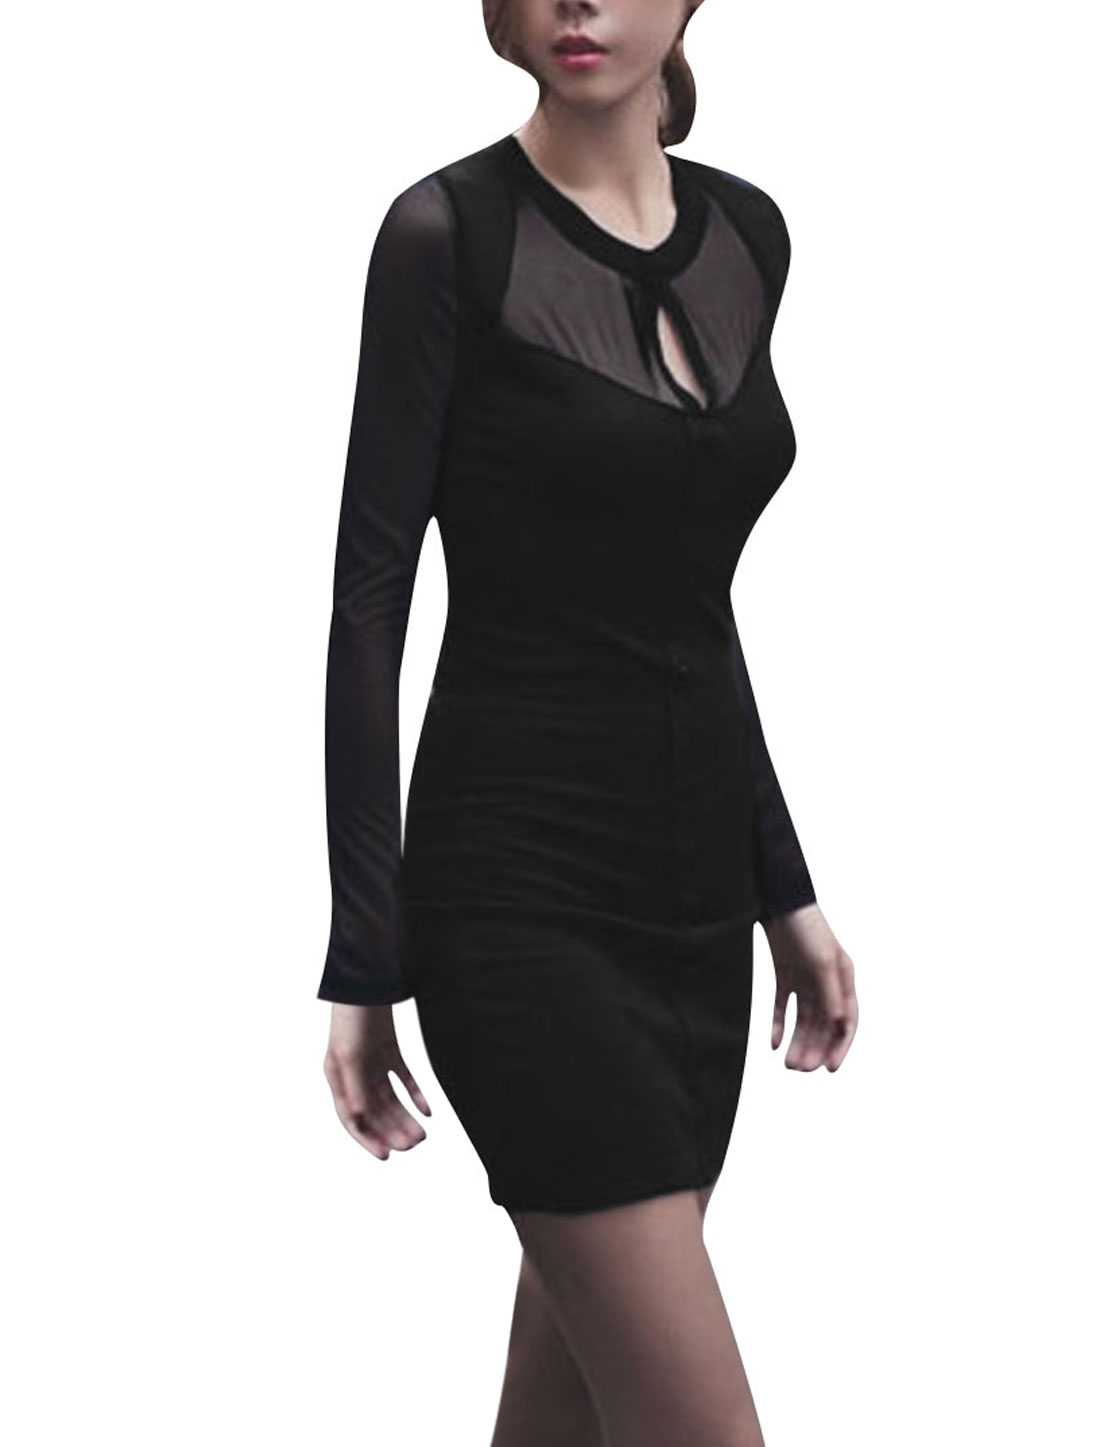 Ladies Long Sleeve Round Neck Semi Sheer Gauze Panel Black Dress XS